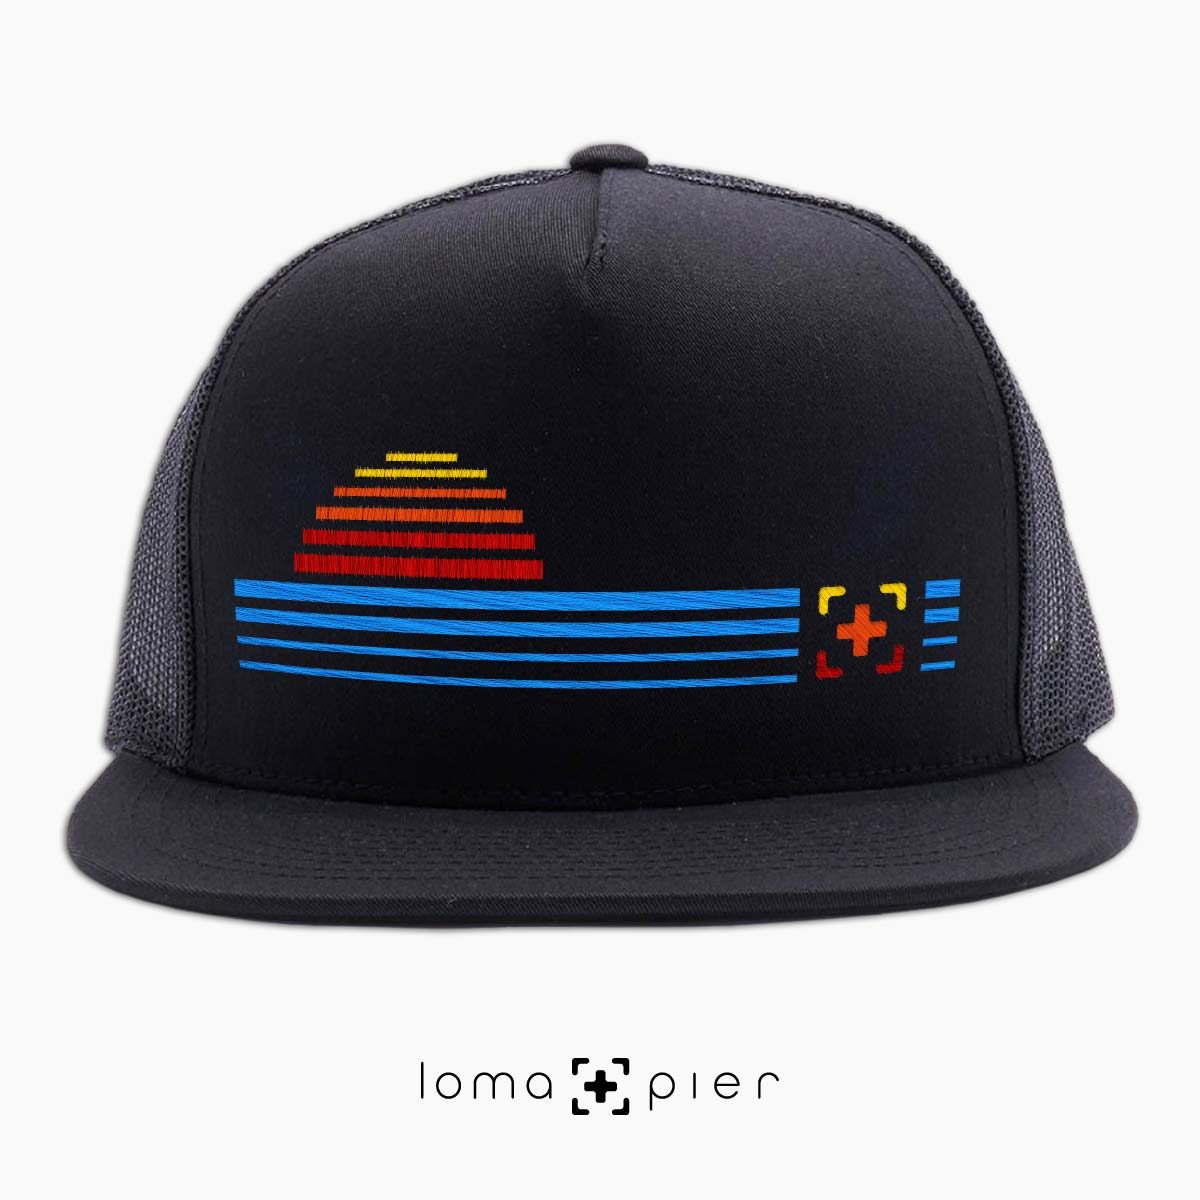 DIGITAL SUNSET icon netback hat in black by loma+pier hat store